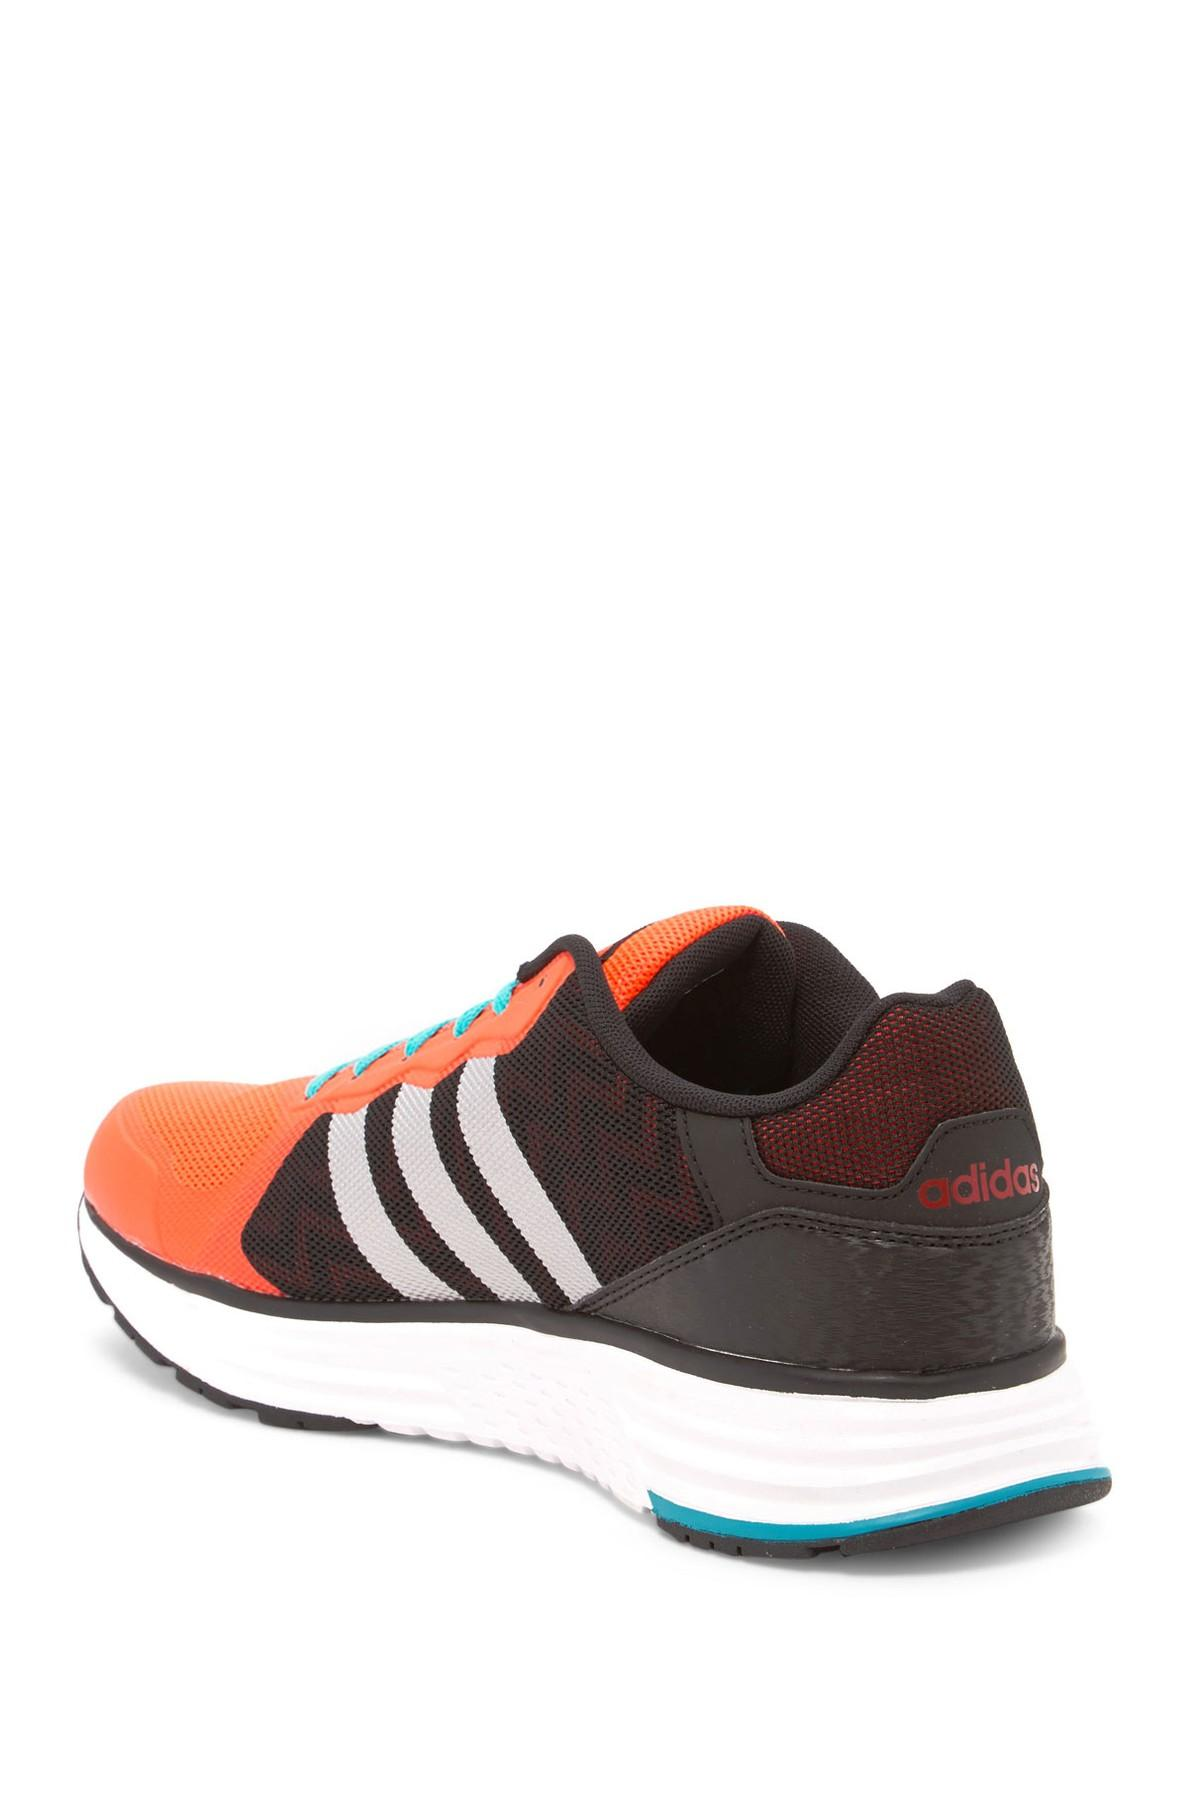 Adidas Black And White Shoes With Rainbow Back